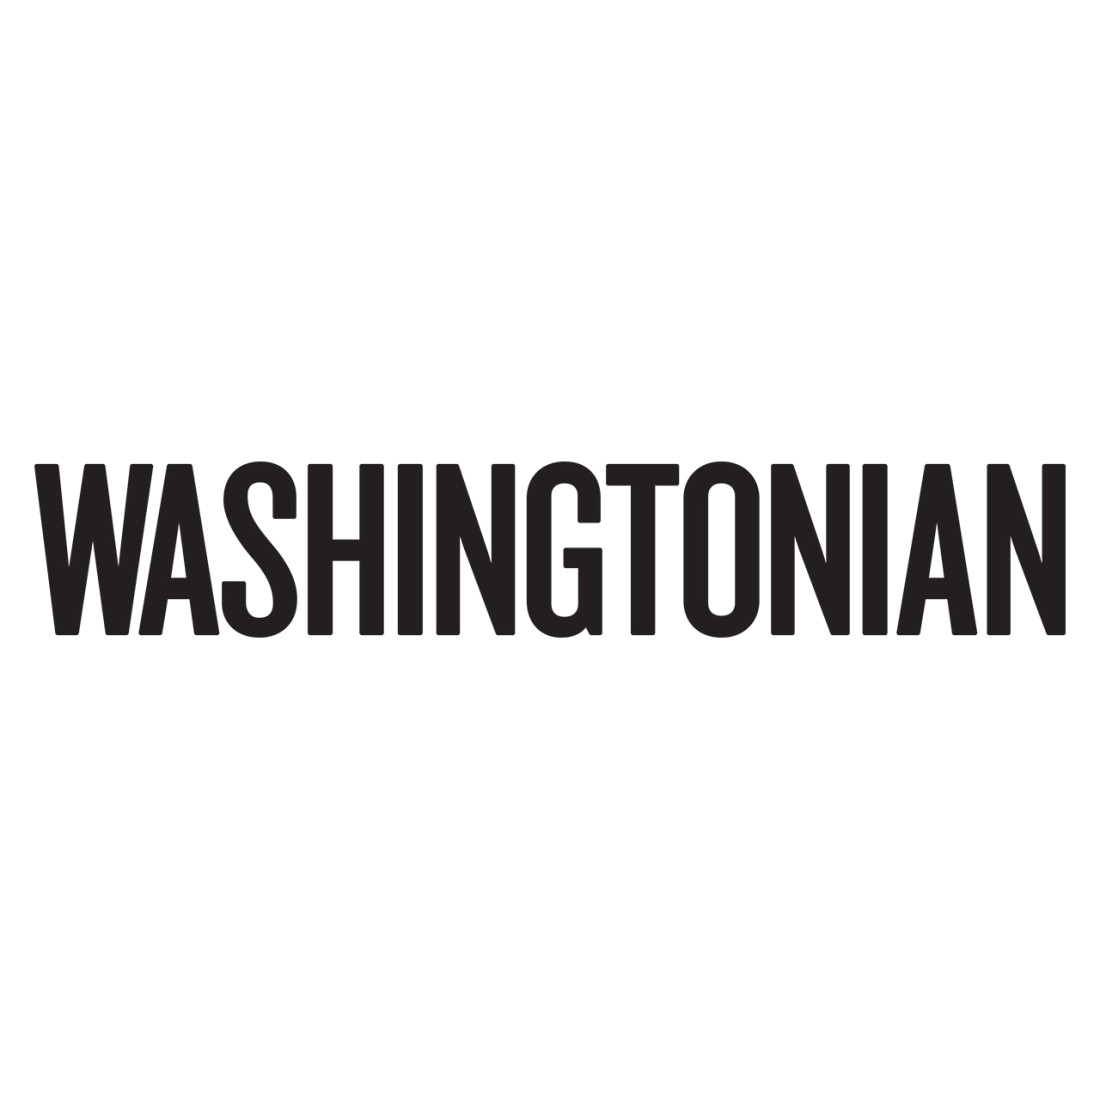 The 100 Very Best Restaurants in Washington    READ MORE ON WASHINGTONIAN